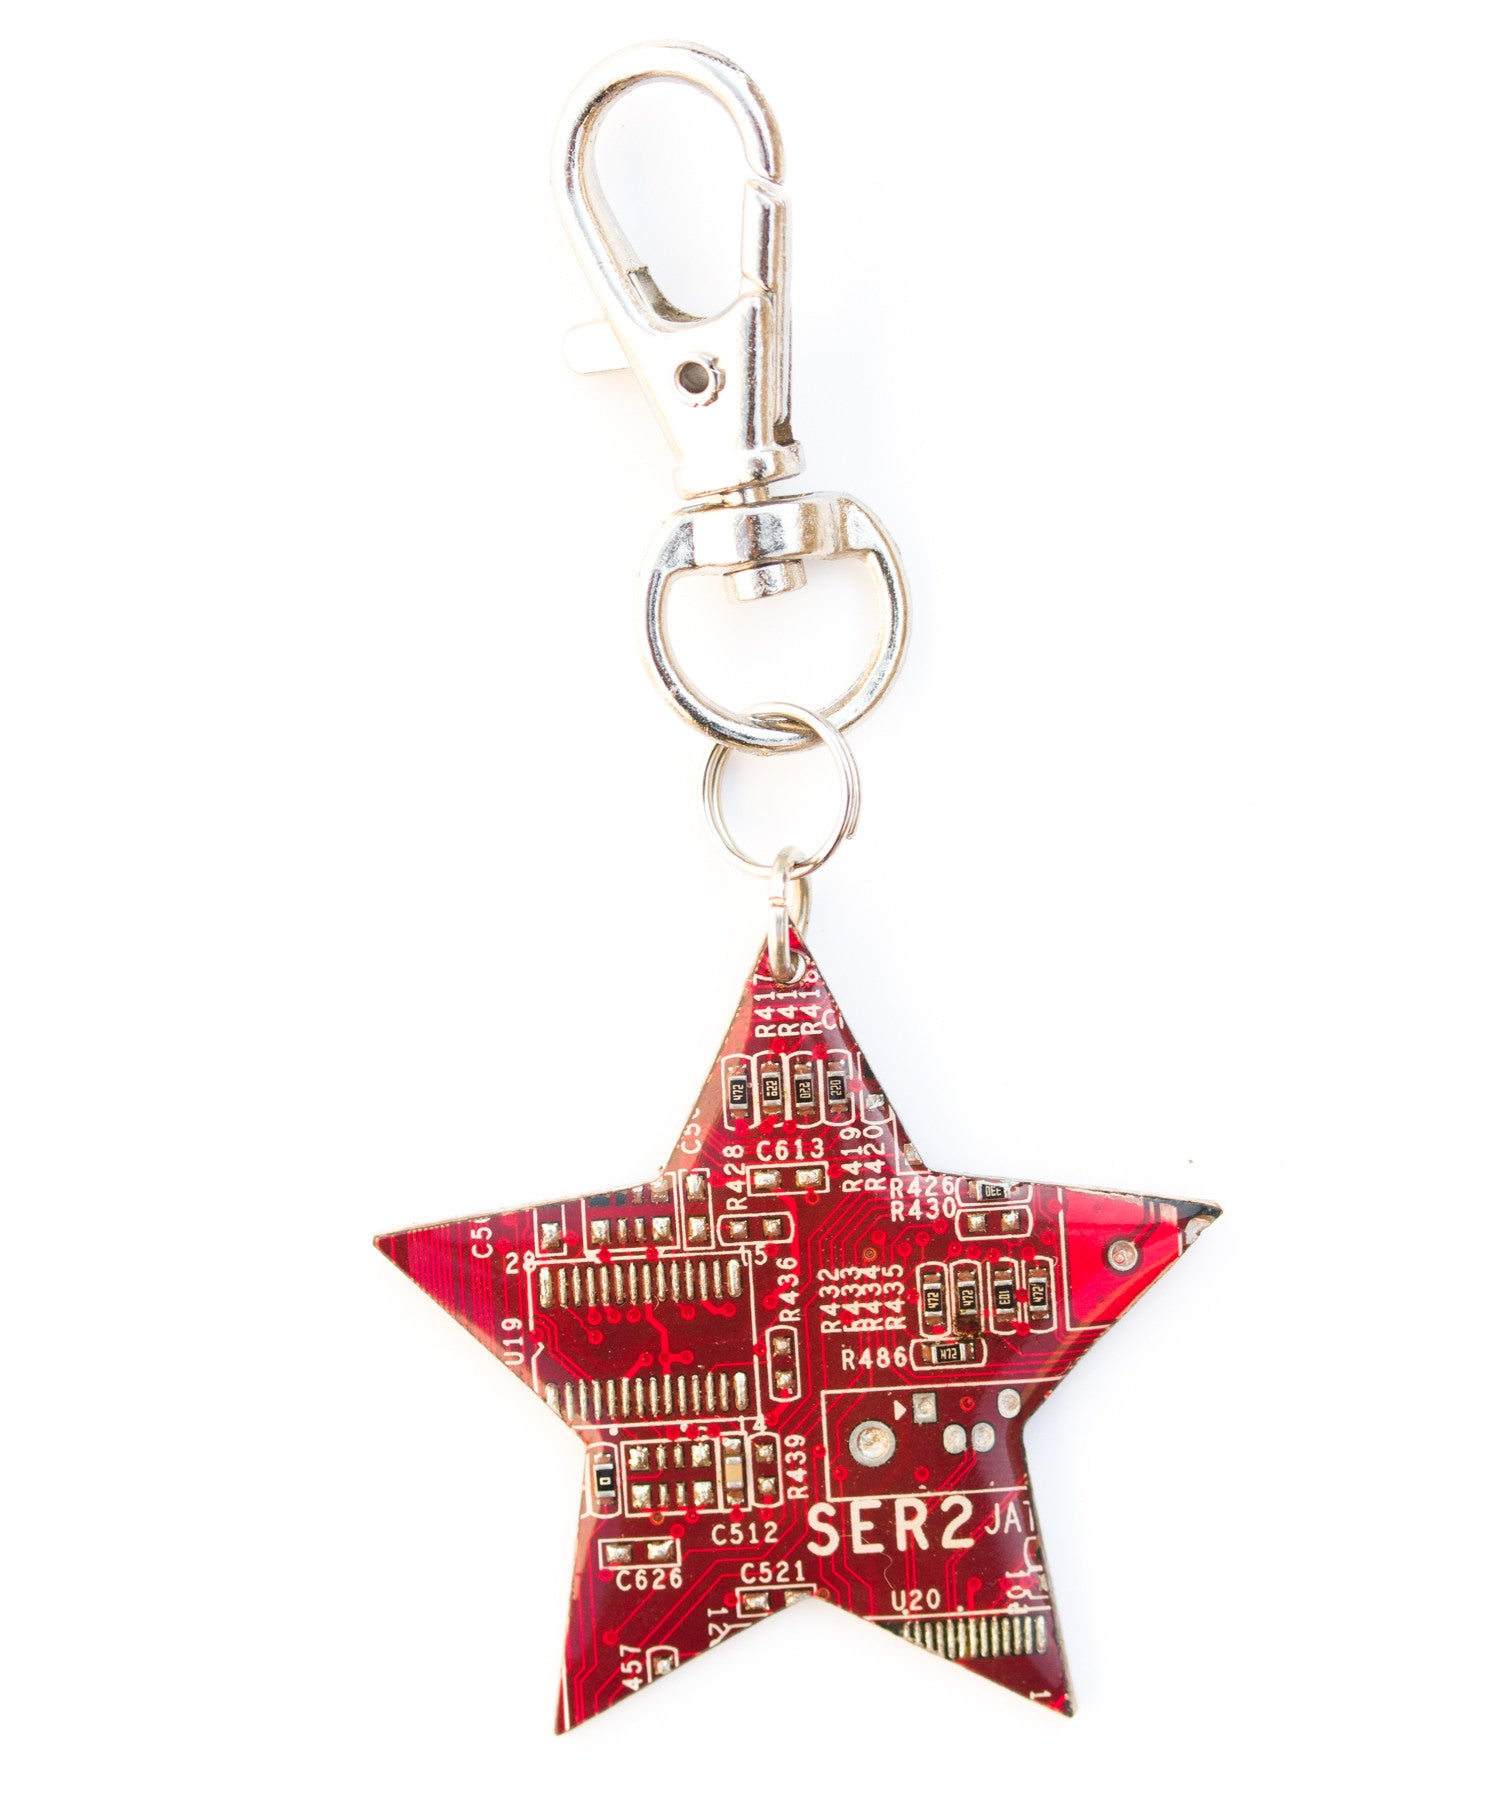 Circuit Board Keyring Cool Keyring Made From Recycled Circuit Board